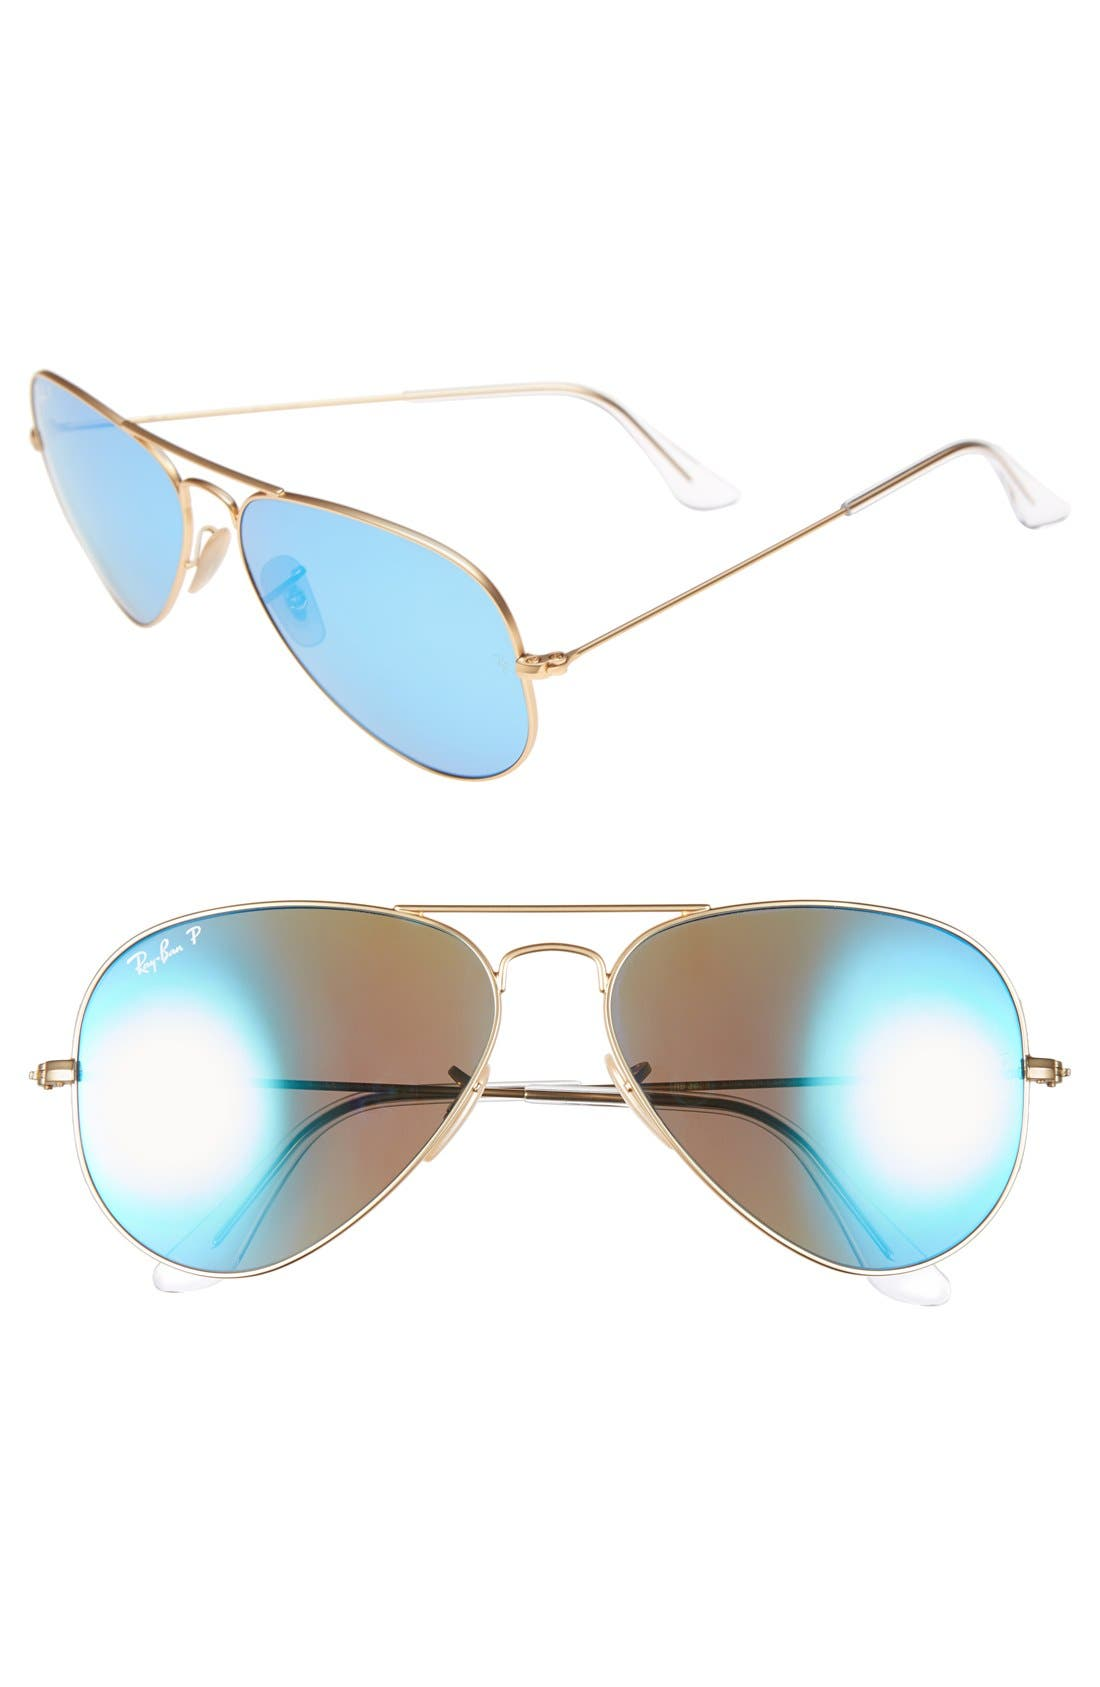 Standard Icons 58mm Mirrored Polarized Aviator Sunglasses,                             Main thumbnail 1, color,                             GOLD/ BLUE MIRROR